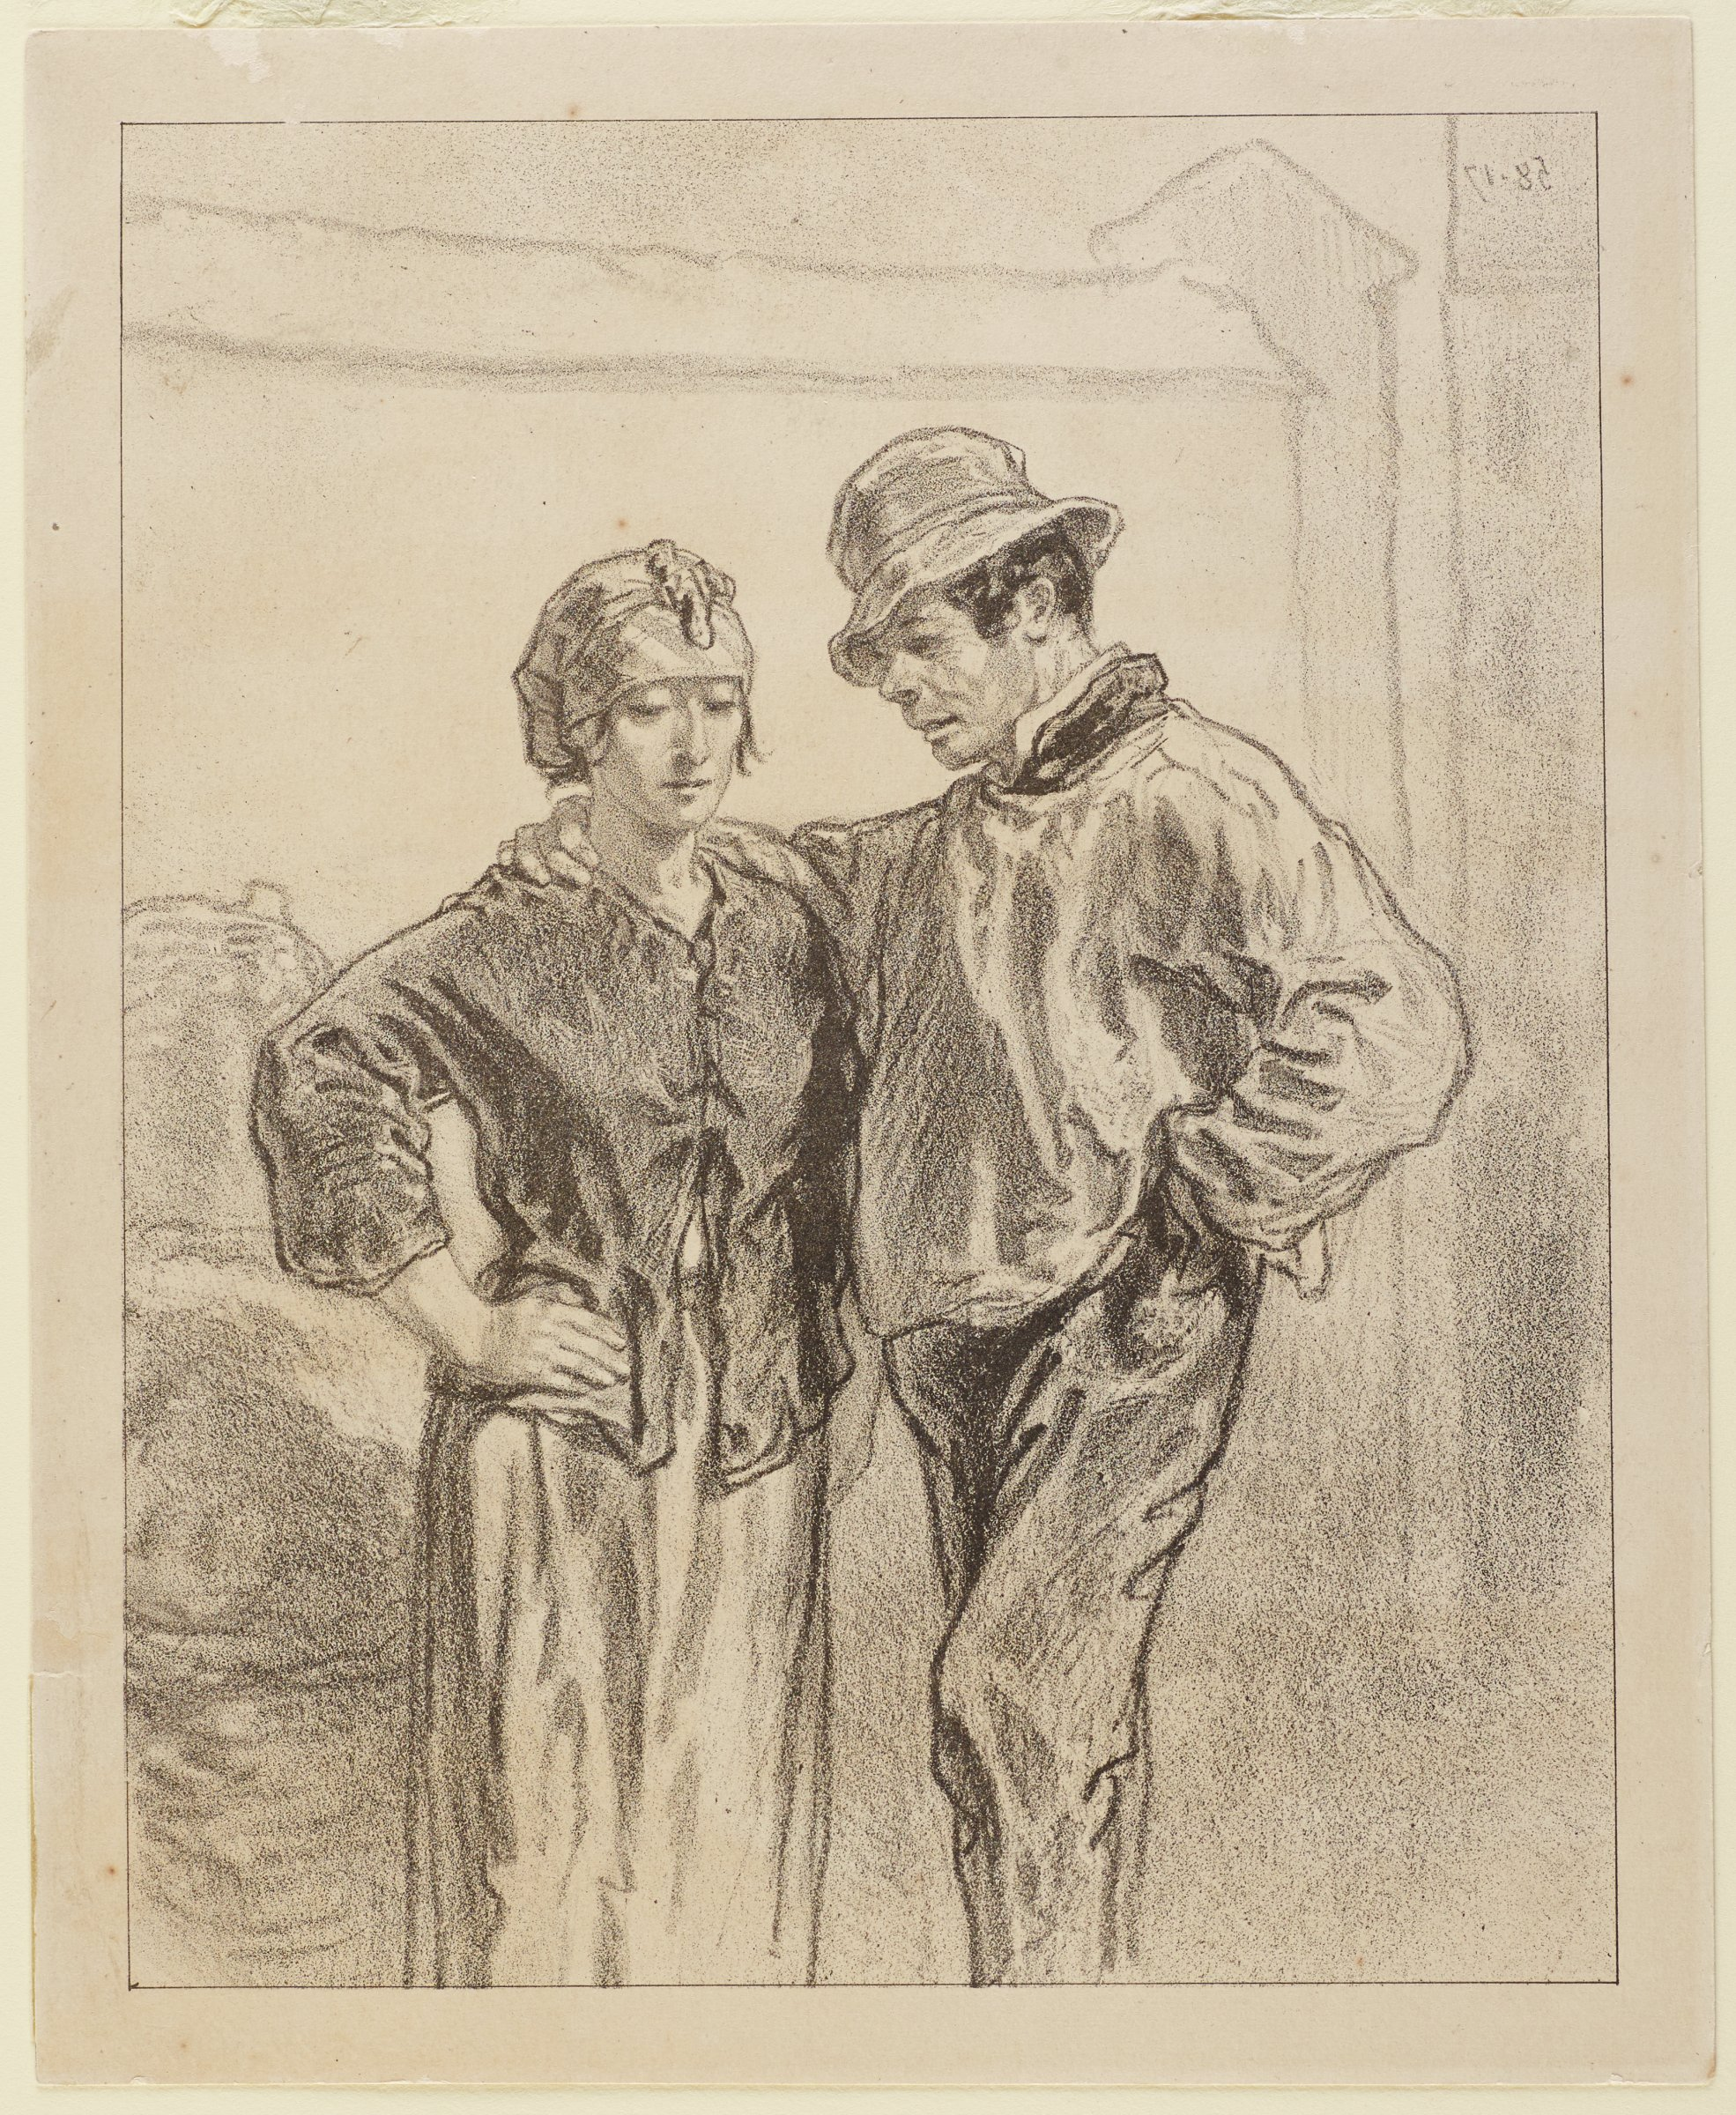 A couple stands in the center of the composition. One arm of each figure is wrapped around the other while the other arm sits on their hips. On verso is a print of young soldier in uniform.